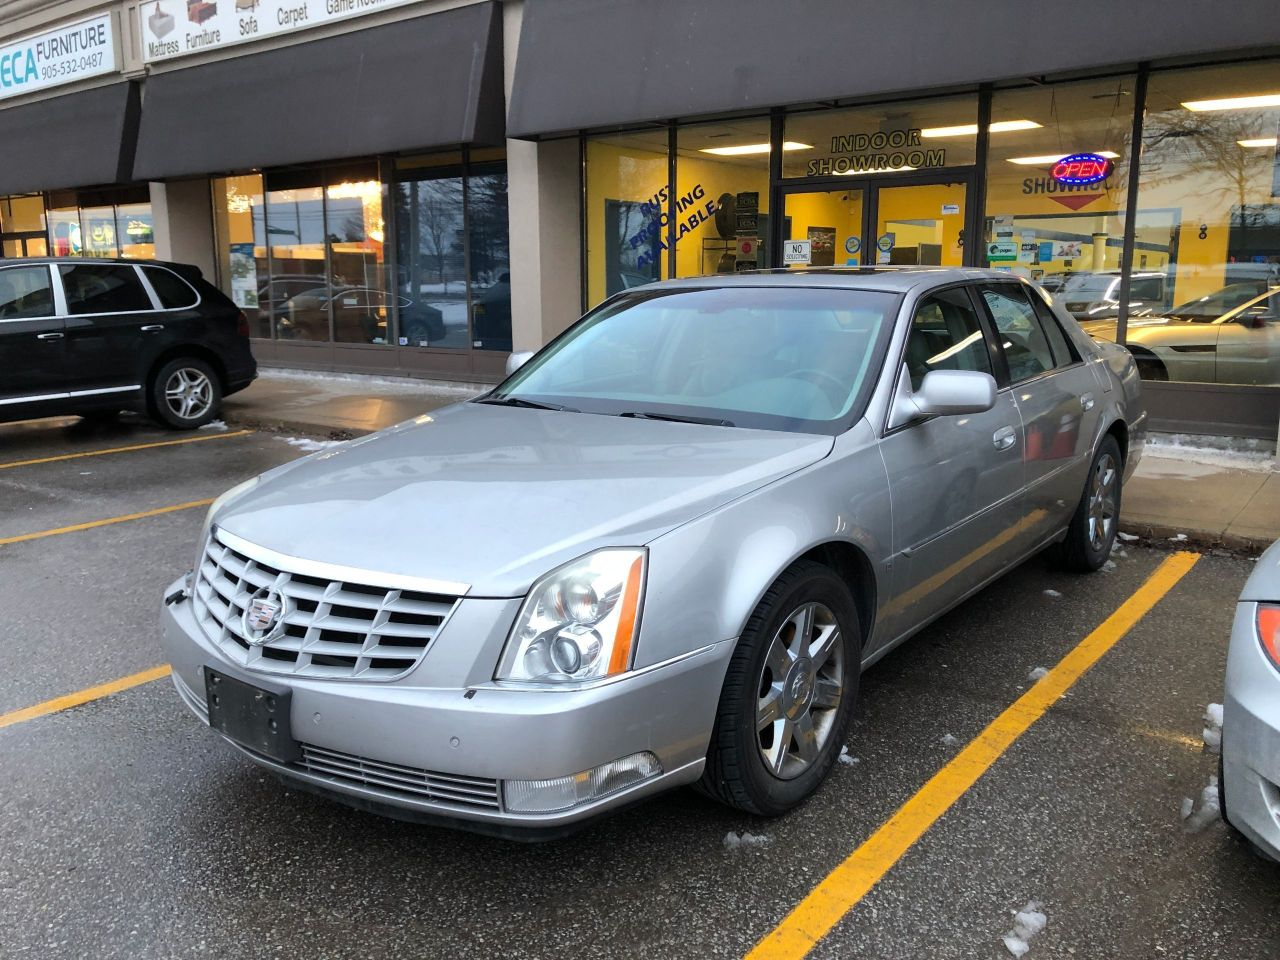 2006 Cadillac DTS Leather, Sunroof, Heated Seats